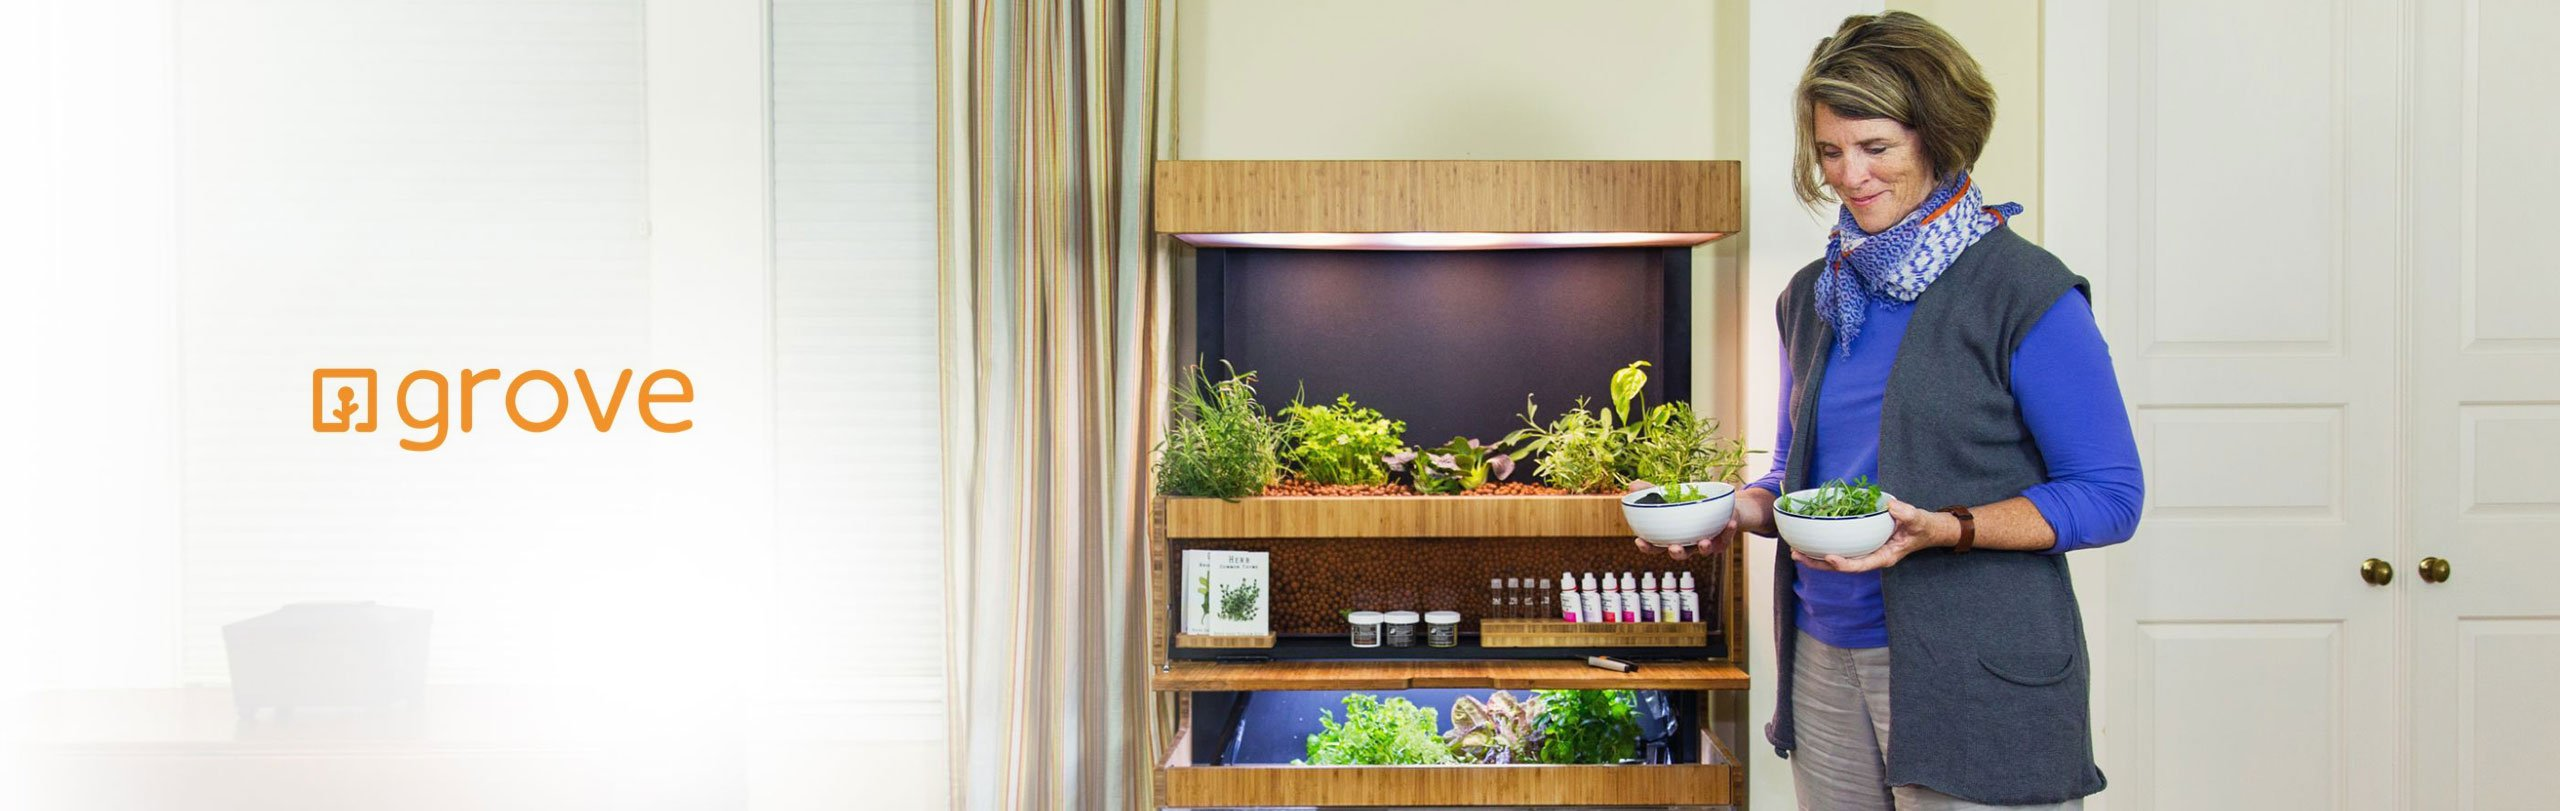 Grow Fresh Food In Your Home With the Grove Ecosystem